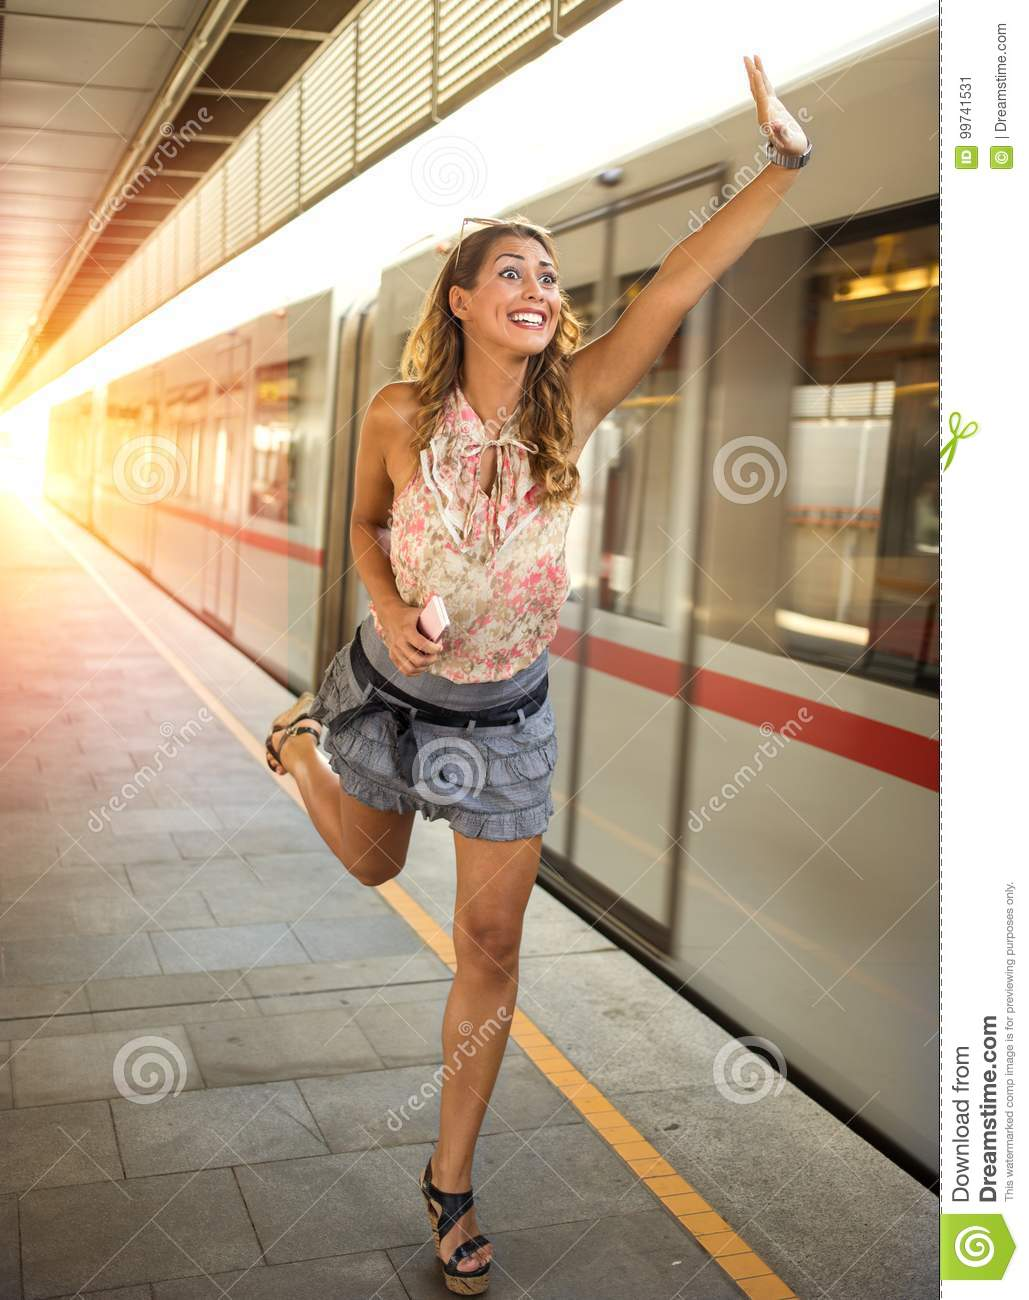 Image result for pictures of a train leaving the station